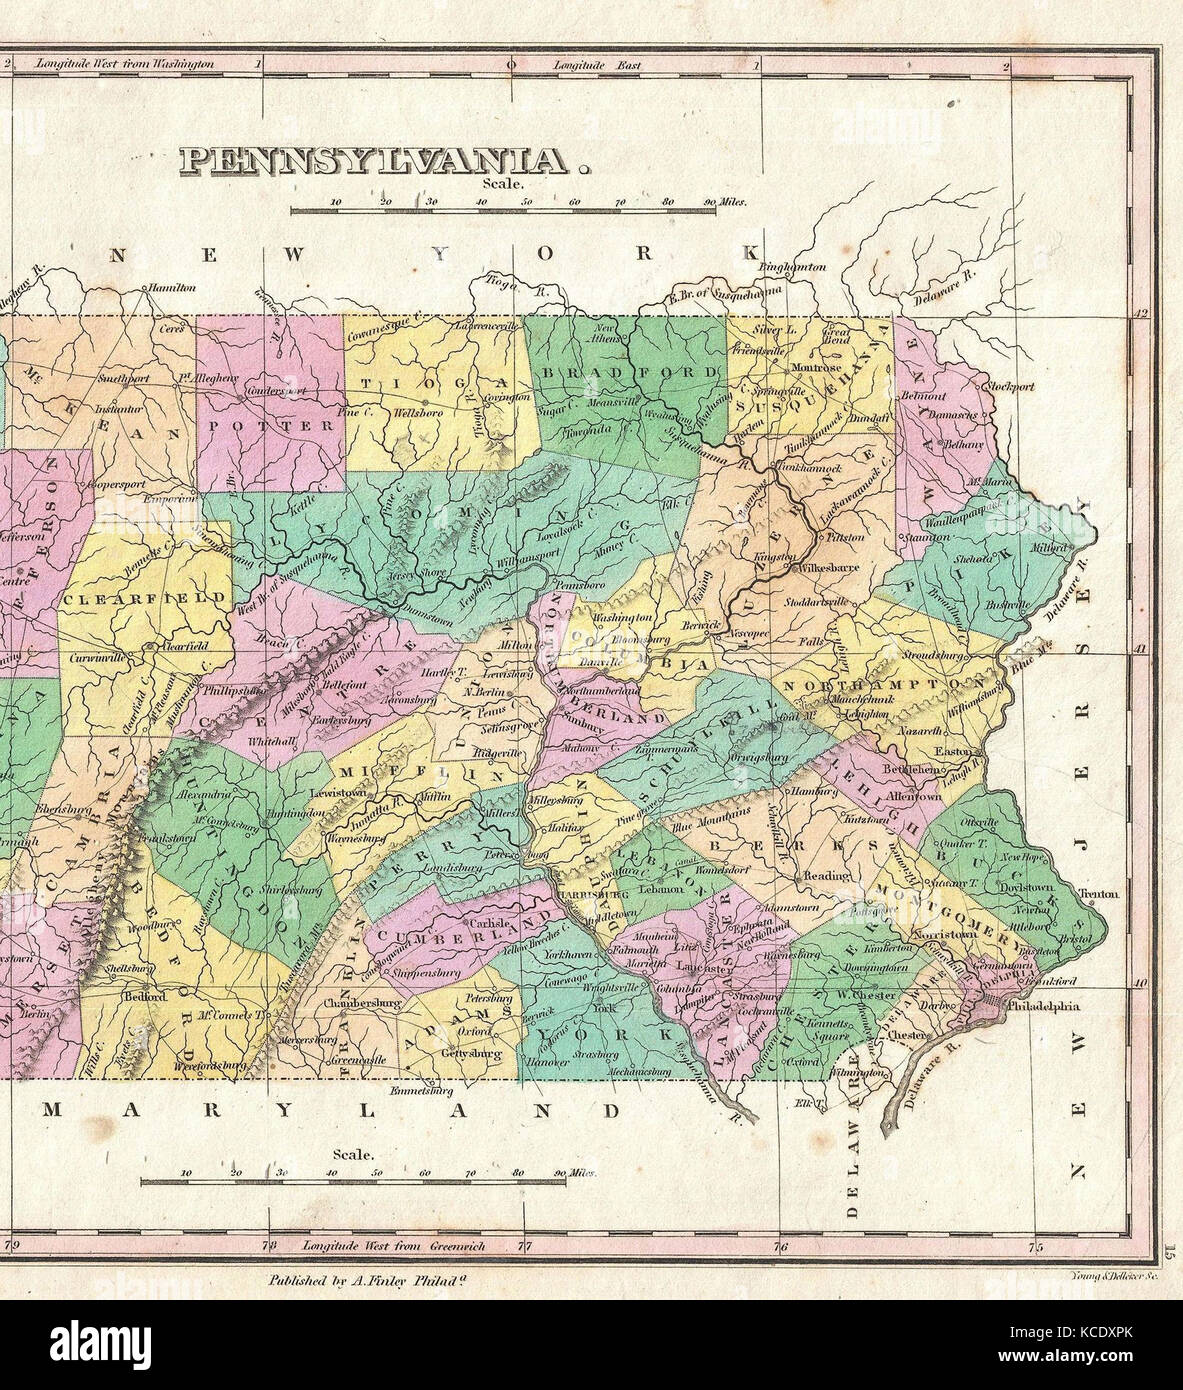 1827 Finley Map of Eastern Pennsylvania Anthony Finley mapmaker